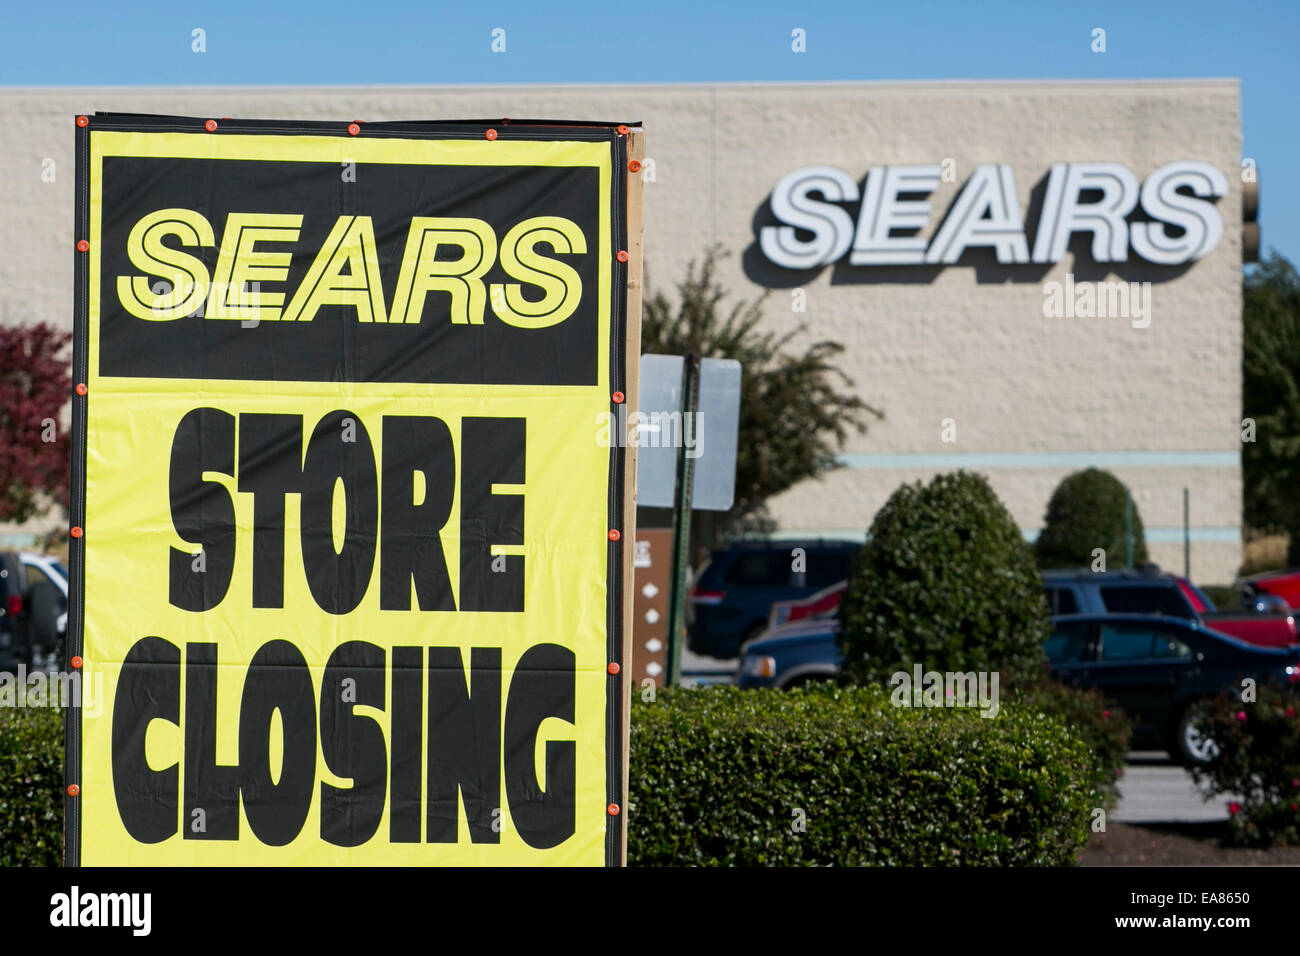 All other Sears locations will remain open, the chain said, and the company